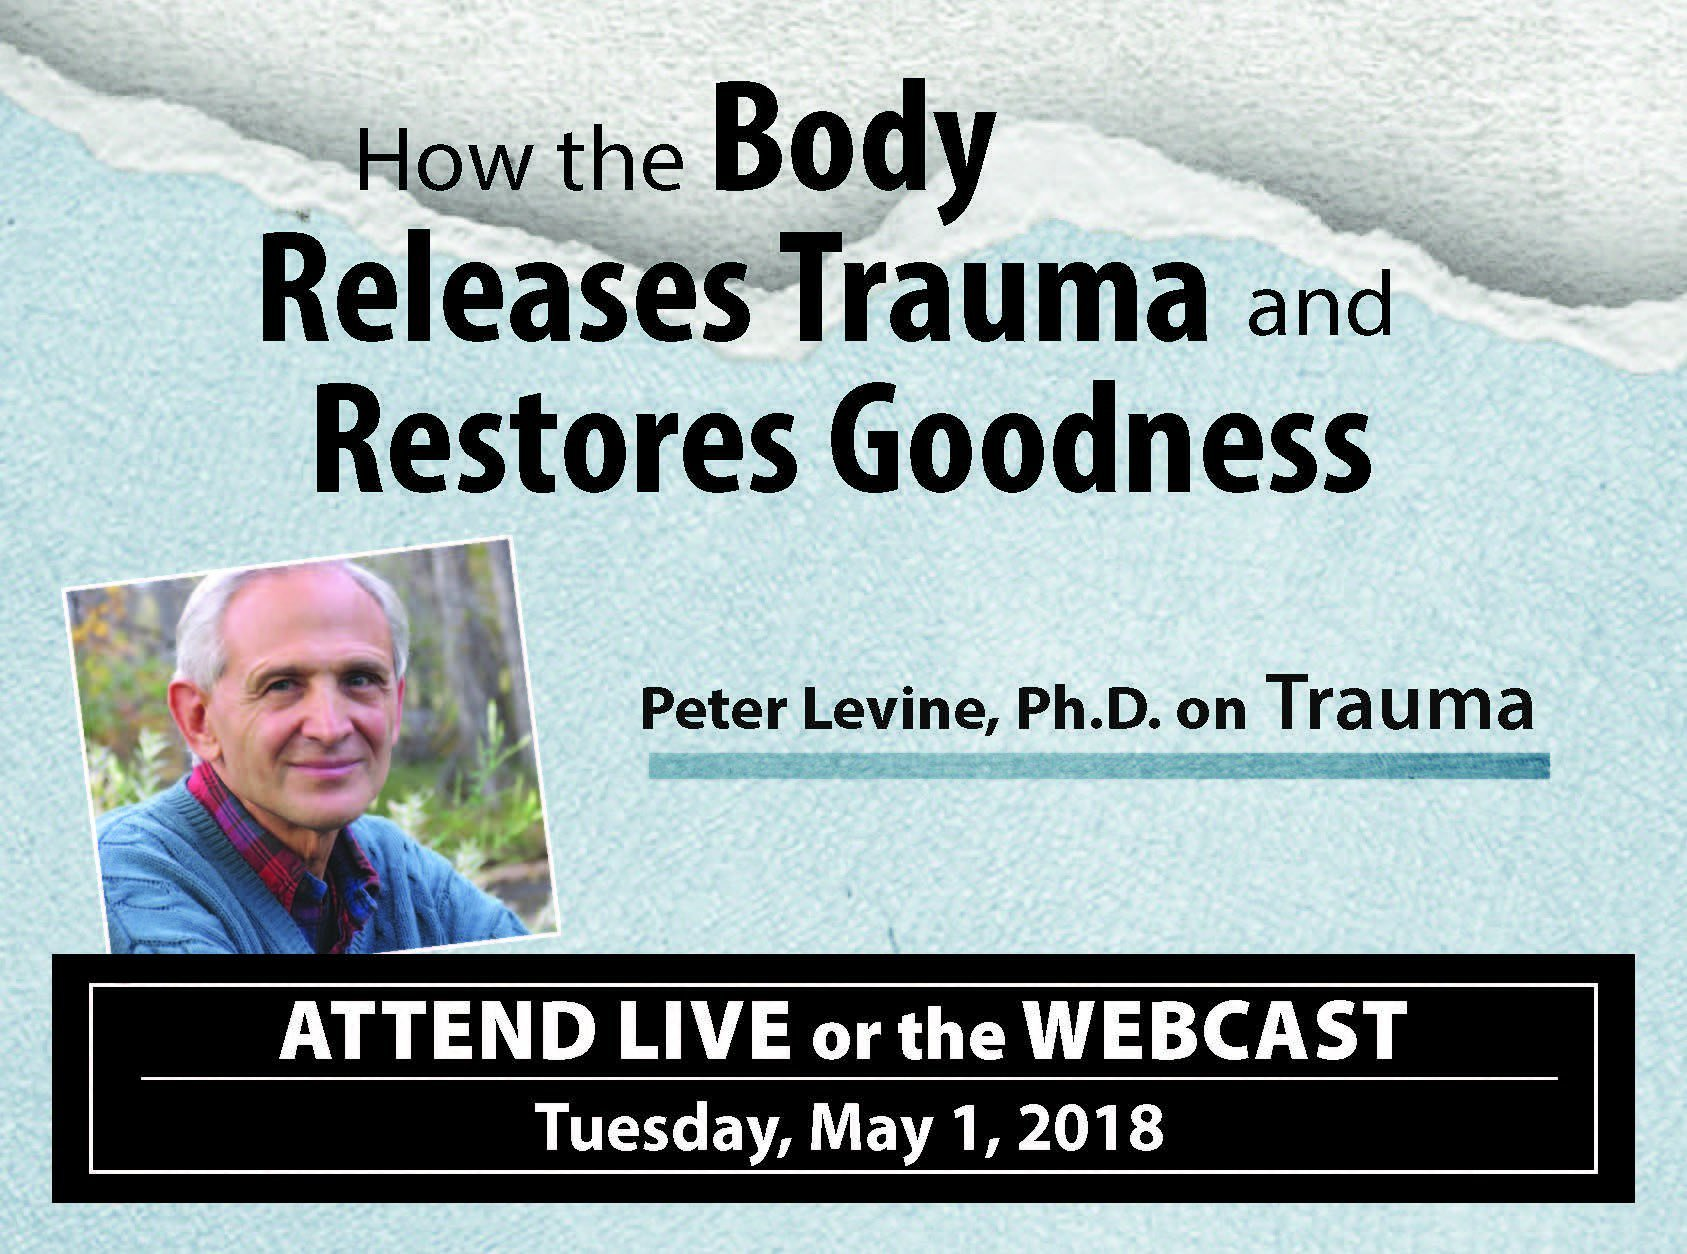 Peter Levine on Trauma